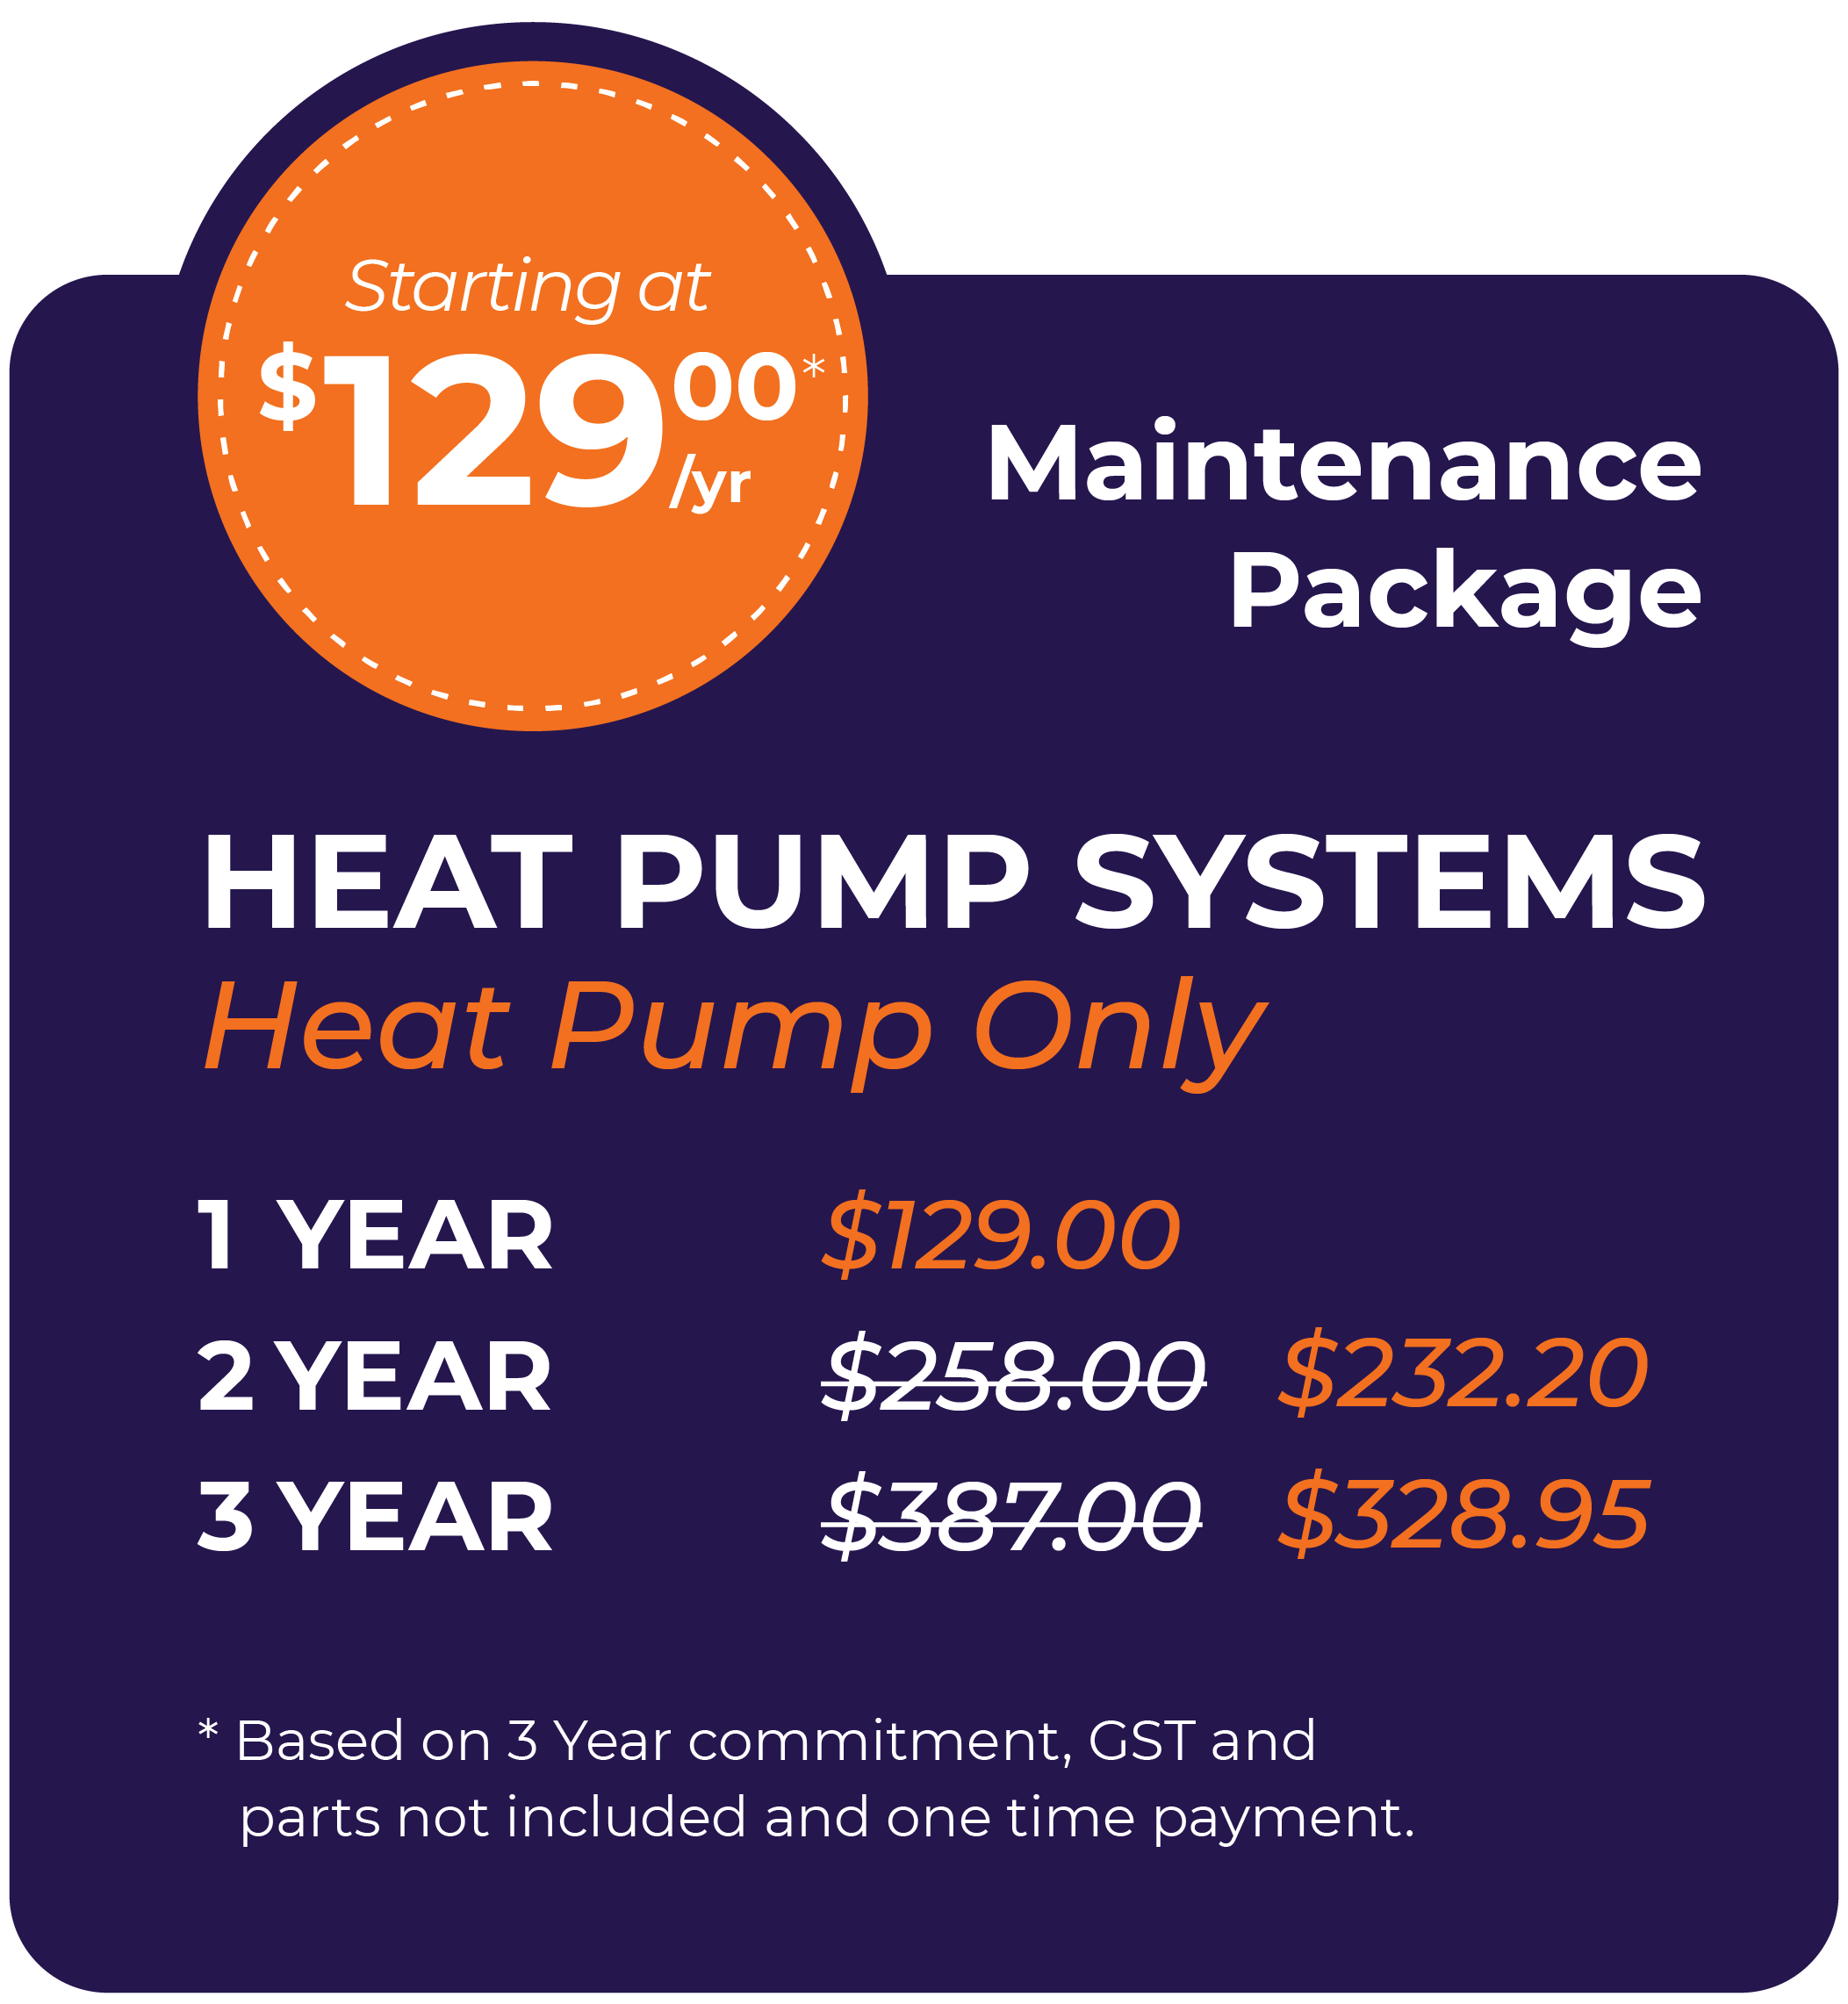 Heat Pump Only Maintenance Package